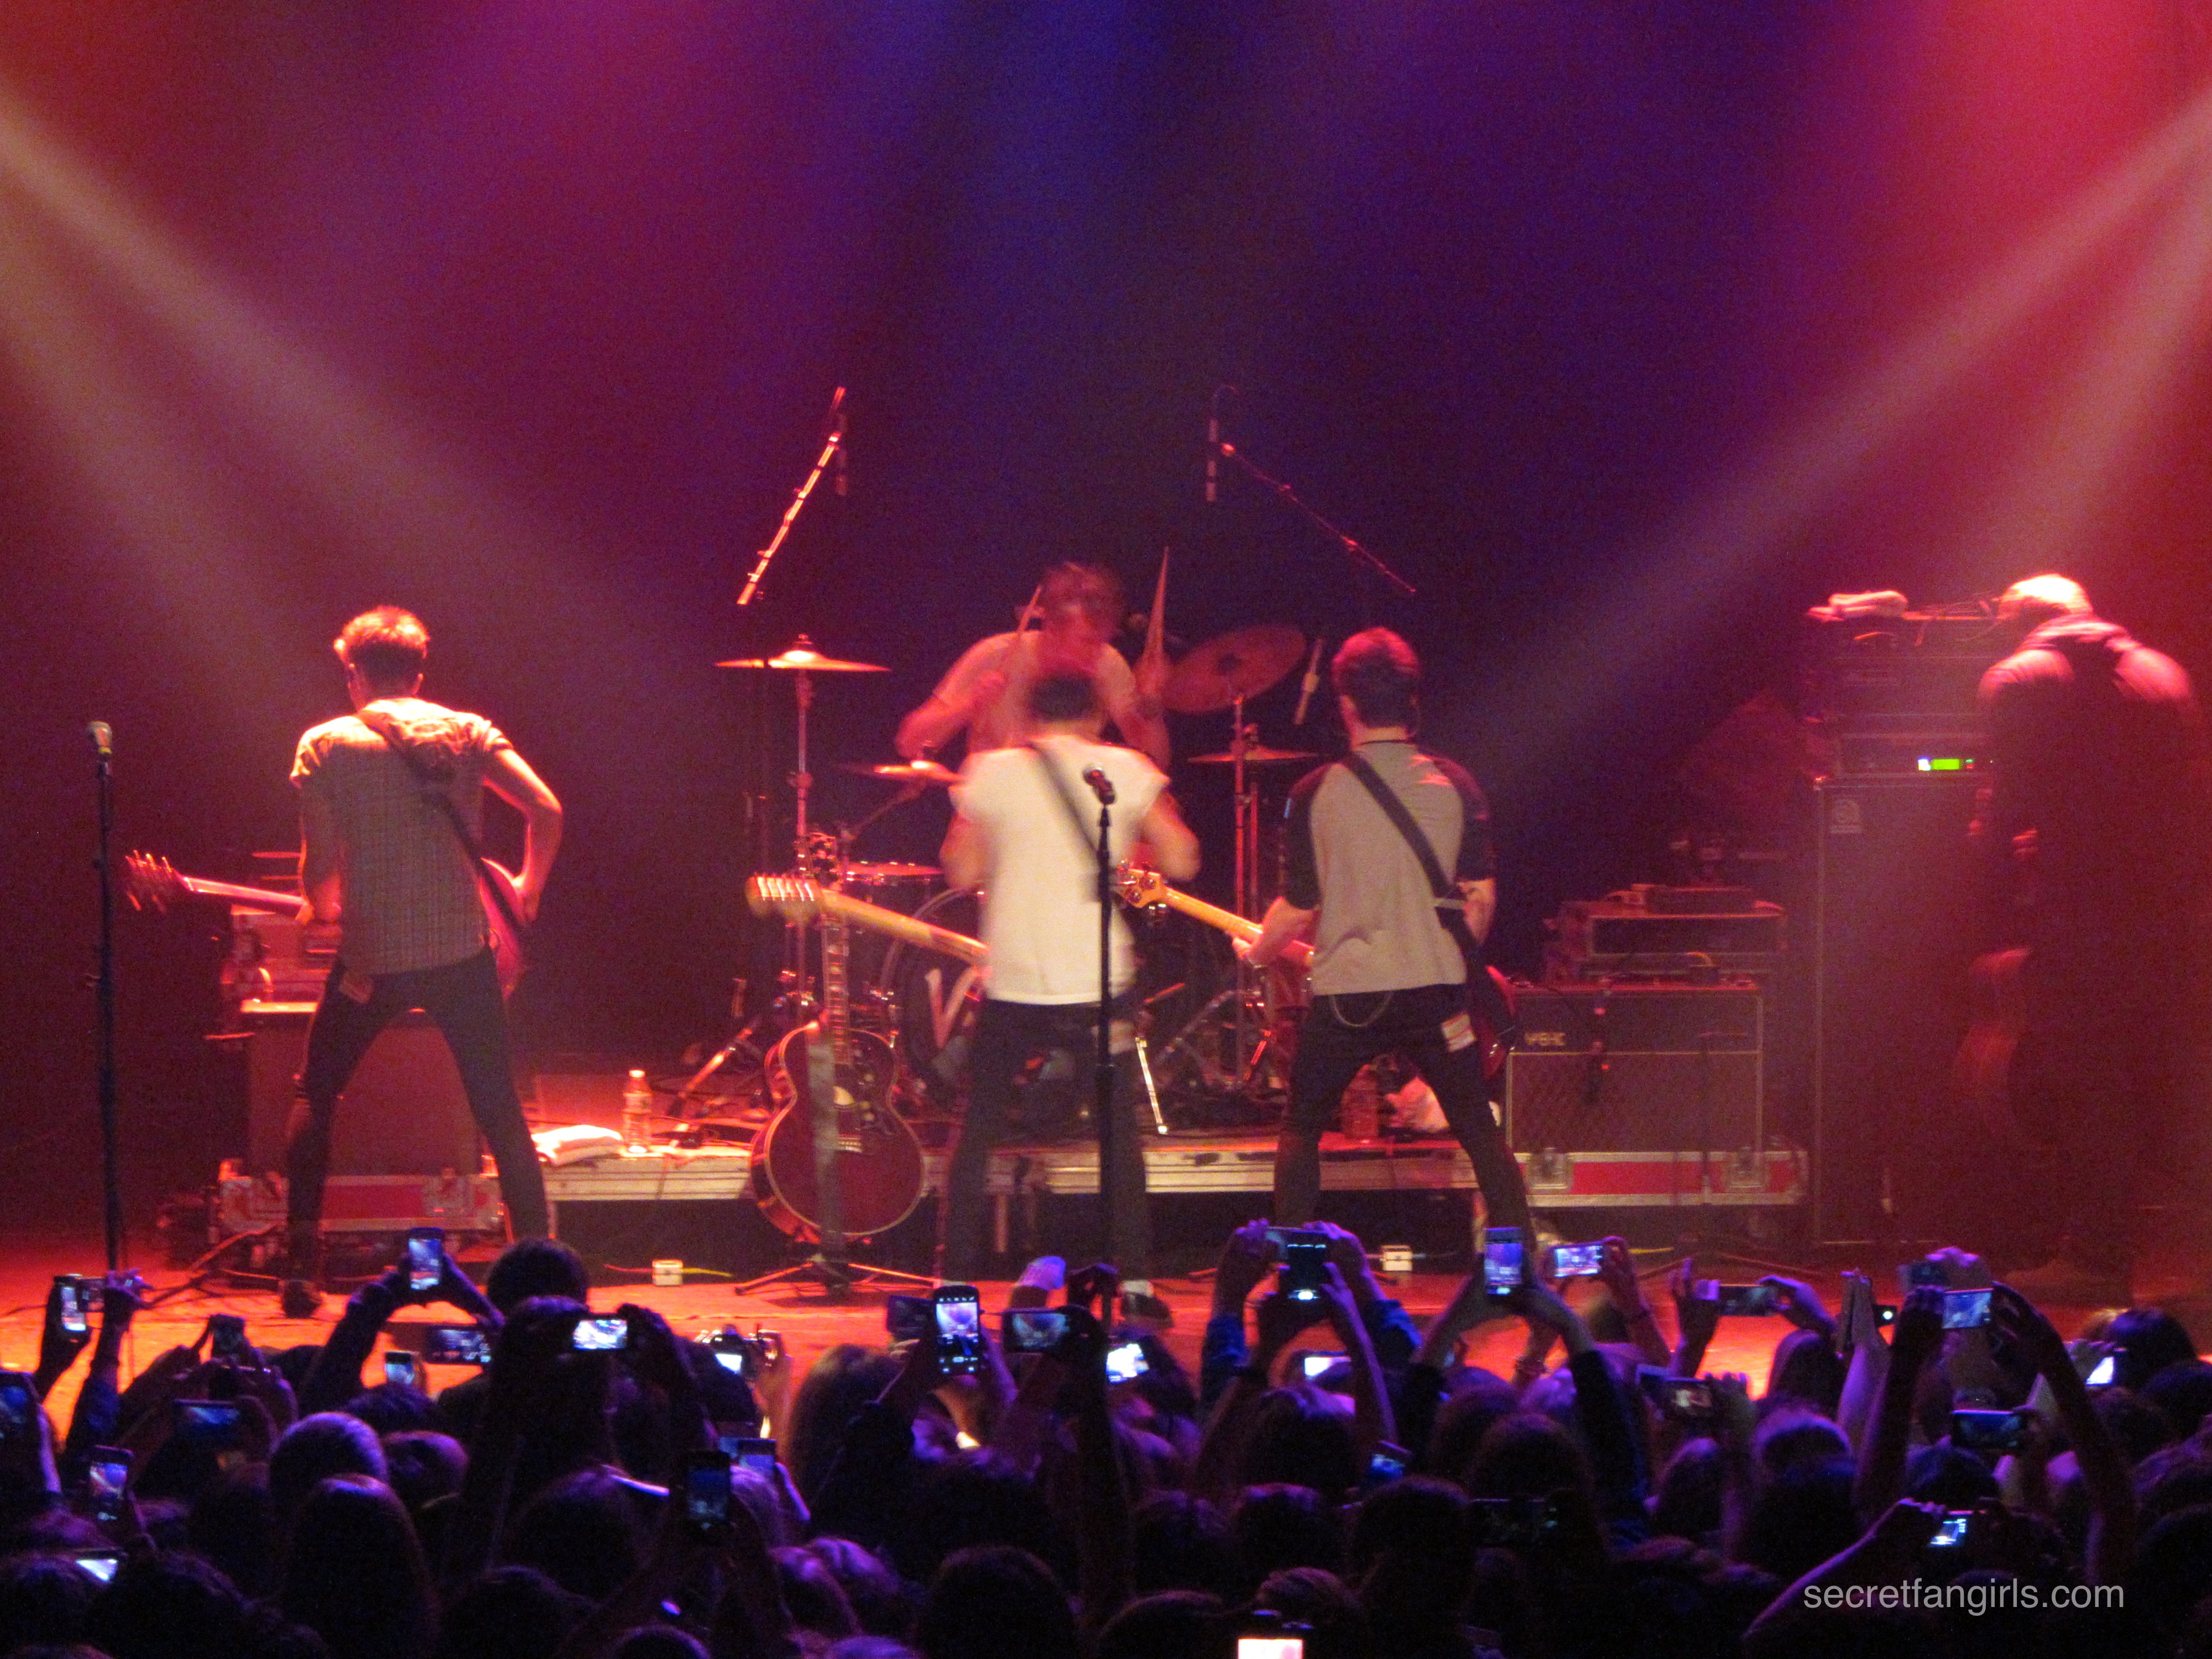 The Vamps And Ajr Rock The Gramercy Theater In Sold Out Show